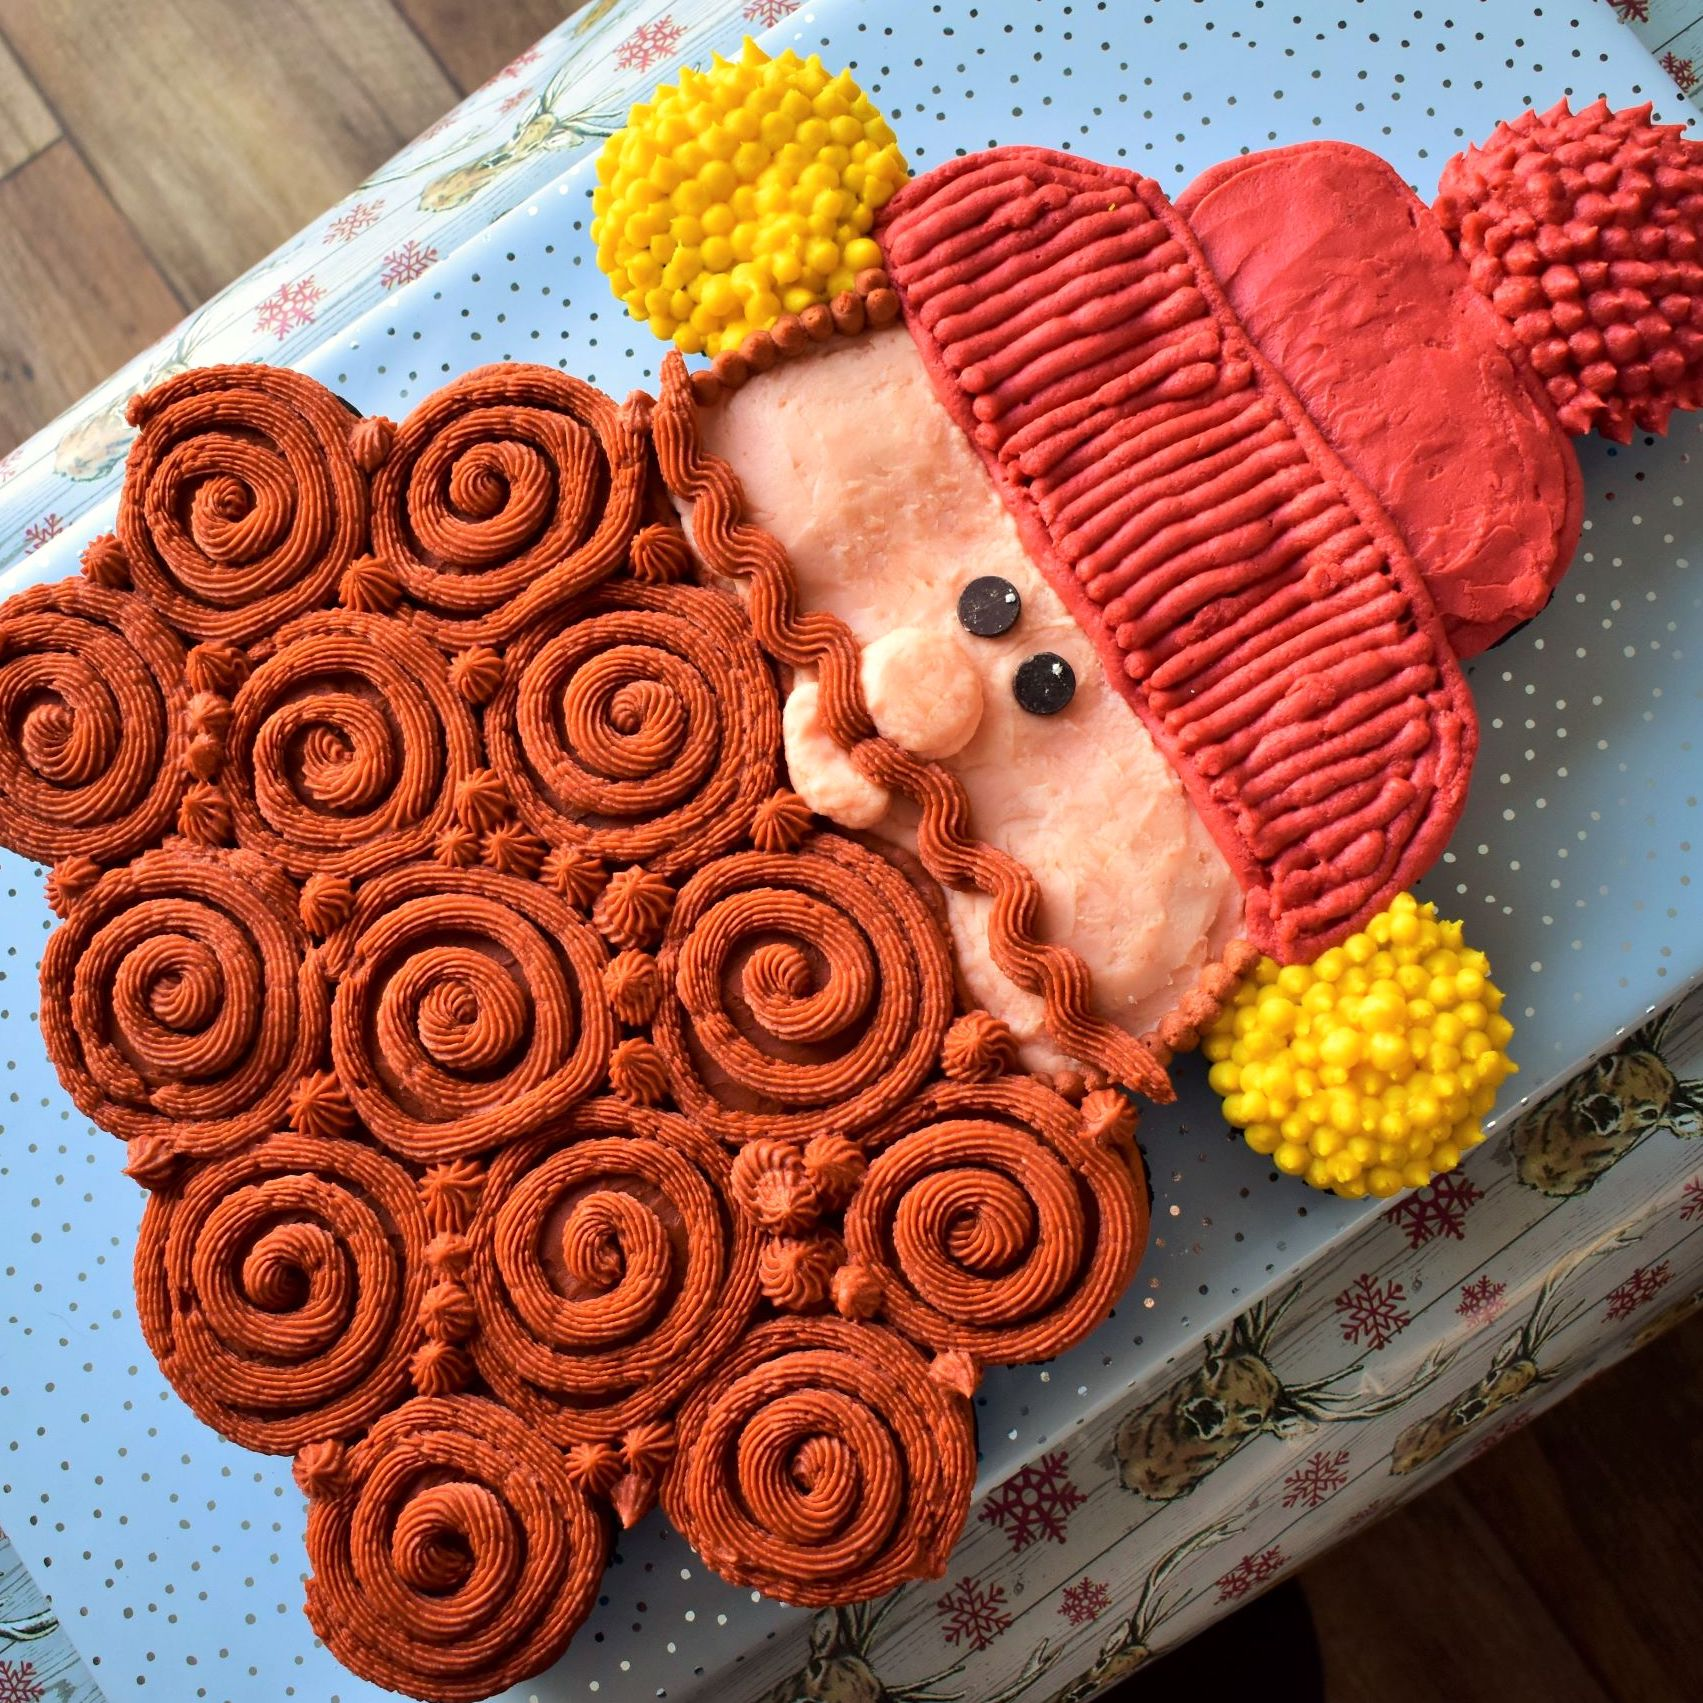 cupcake cake shaped like Yukon Cornelius character from Rudolph the Red-Nosed Reindeer